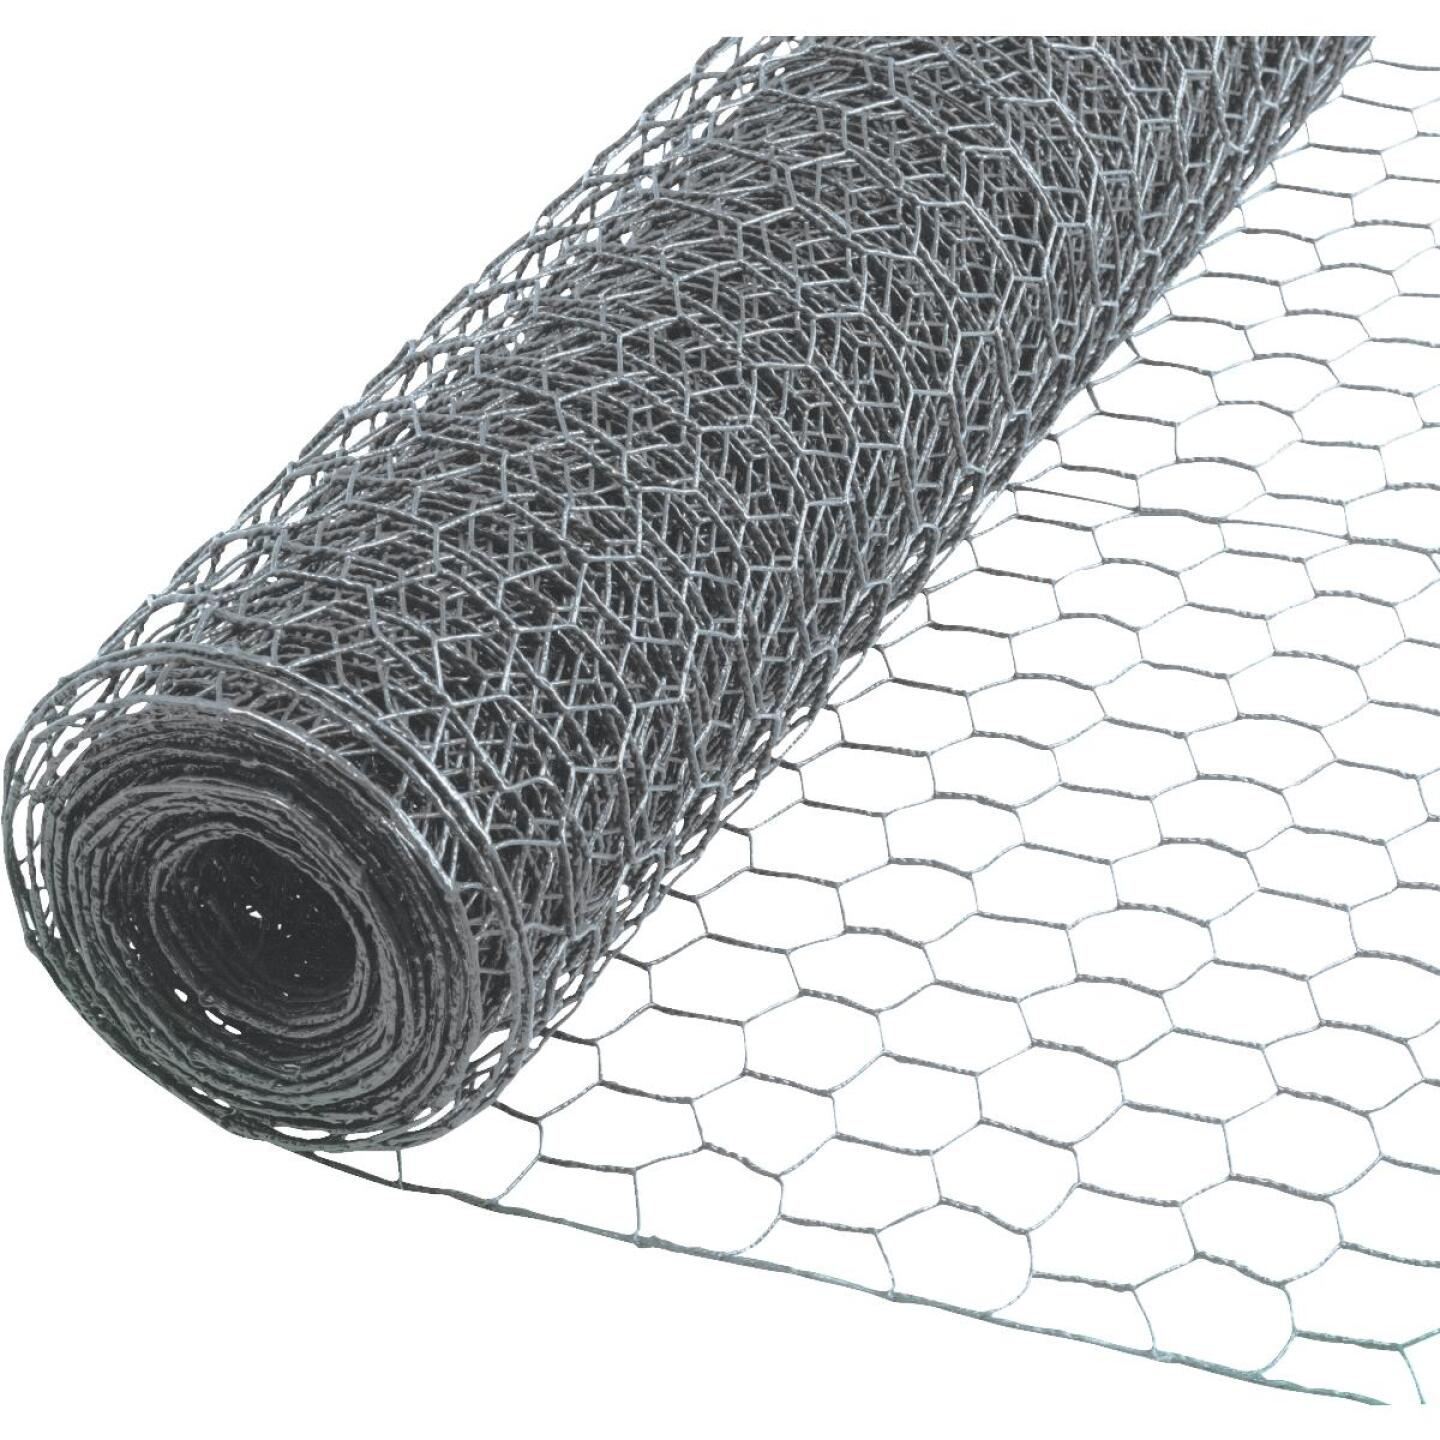 Do it 2 In. x 24 In. H. x 50 Ft. L. Hexagonal Wire Poultry Netting Image 1